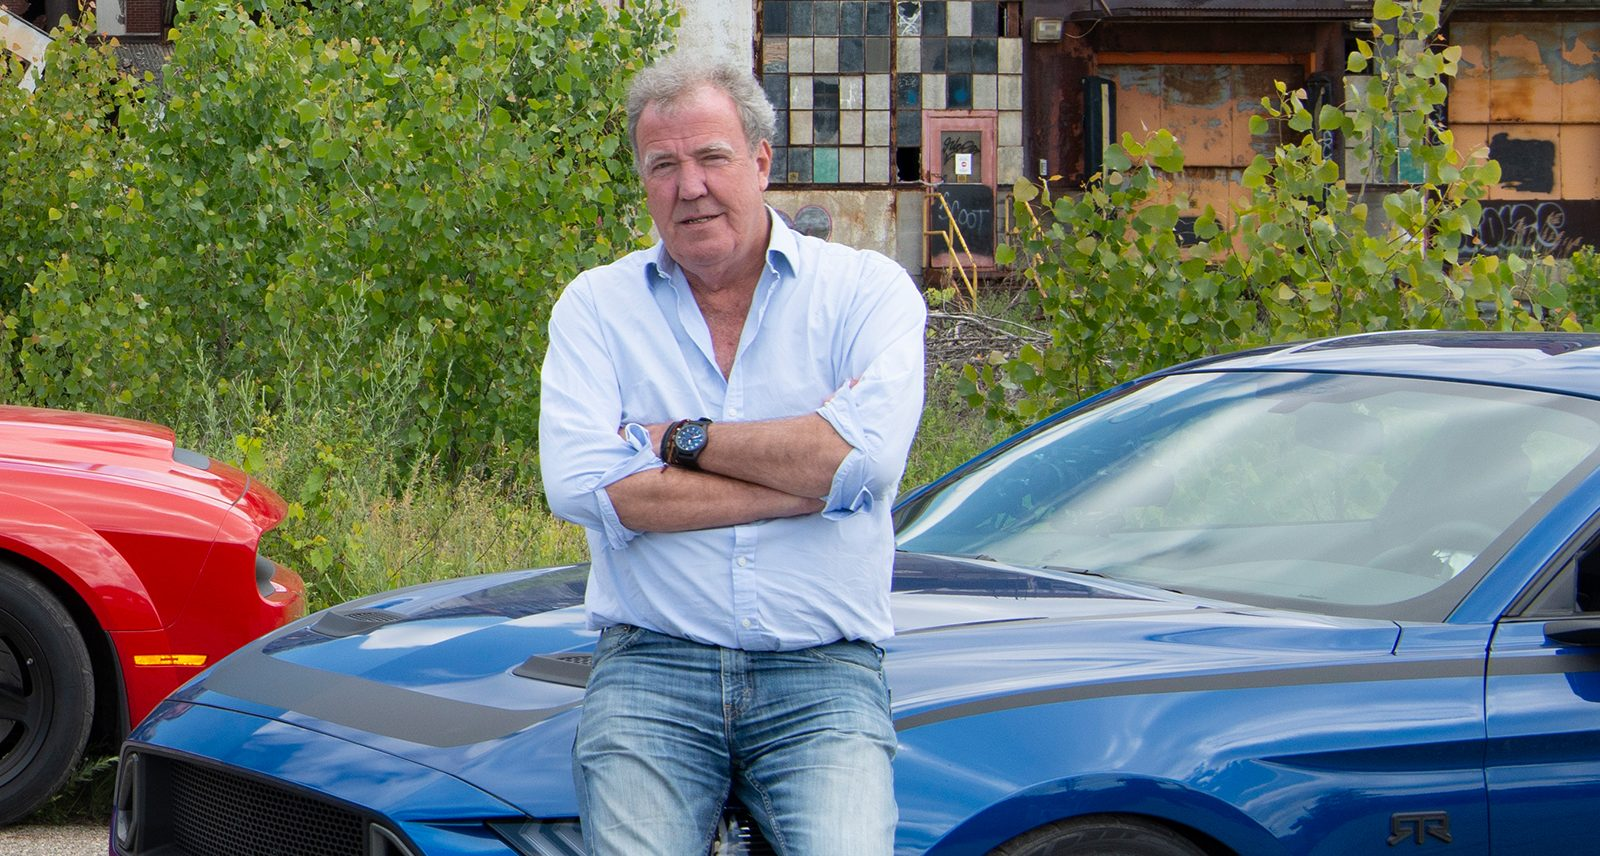 Jeremy Clarkson Has Some Opinions on the Future of Cars